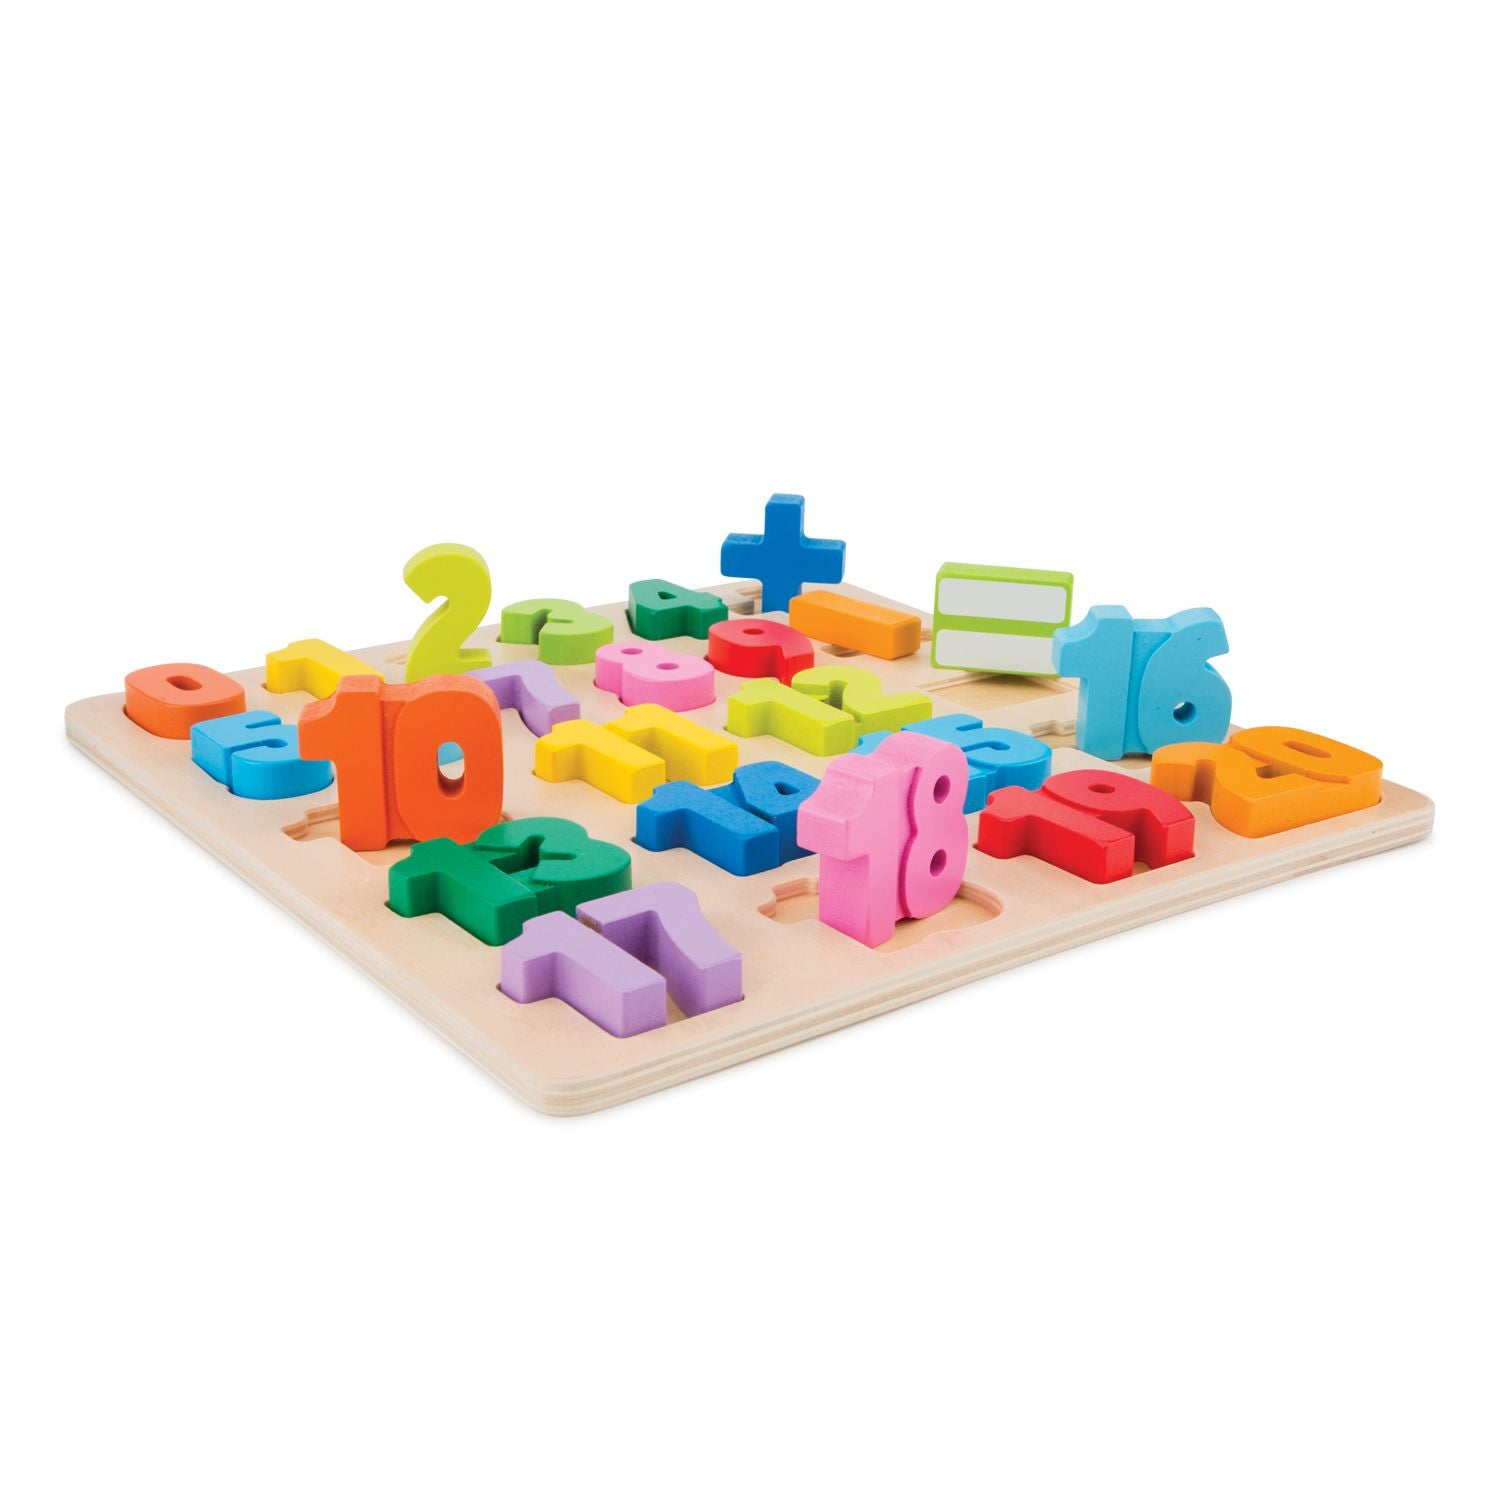 Number Puzzle by New Classic Toys